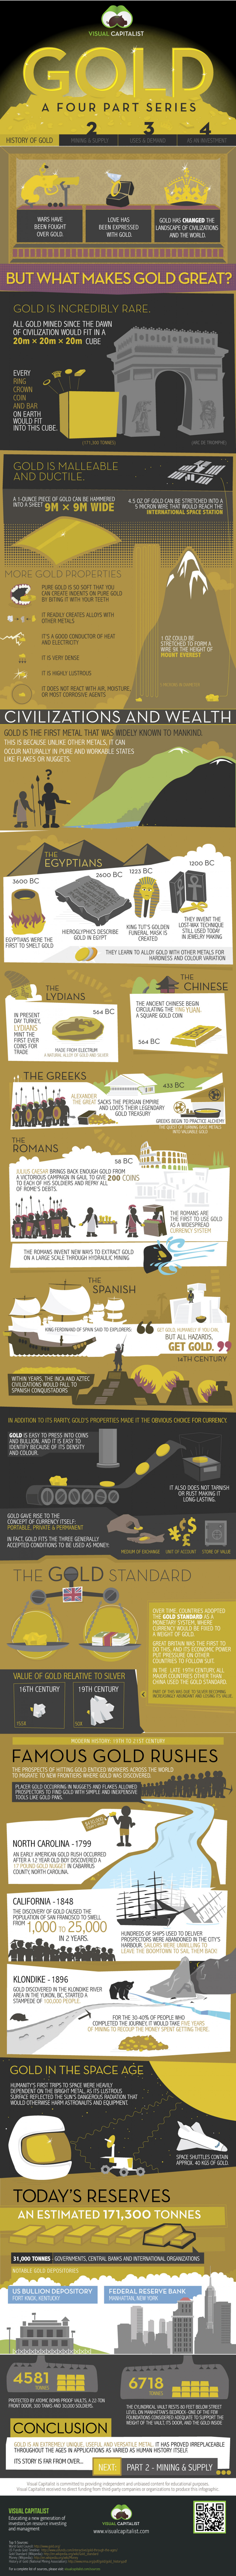 Gold: The History of Gold (Part I) Infographic